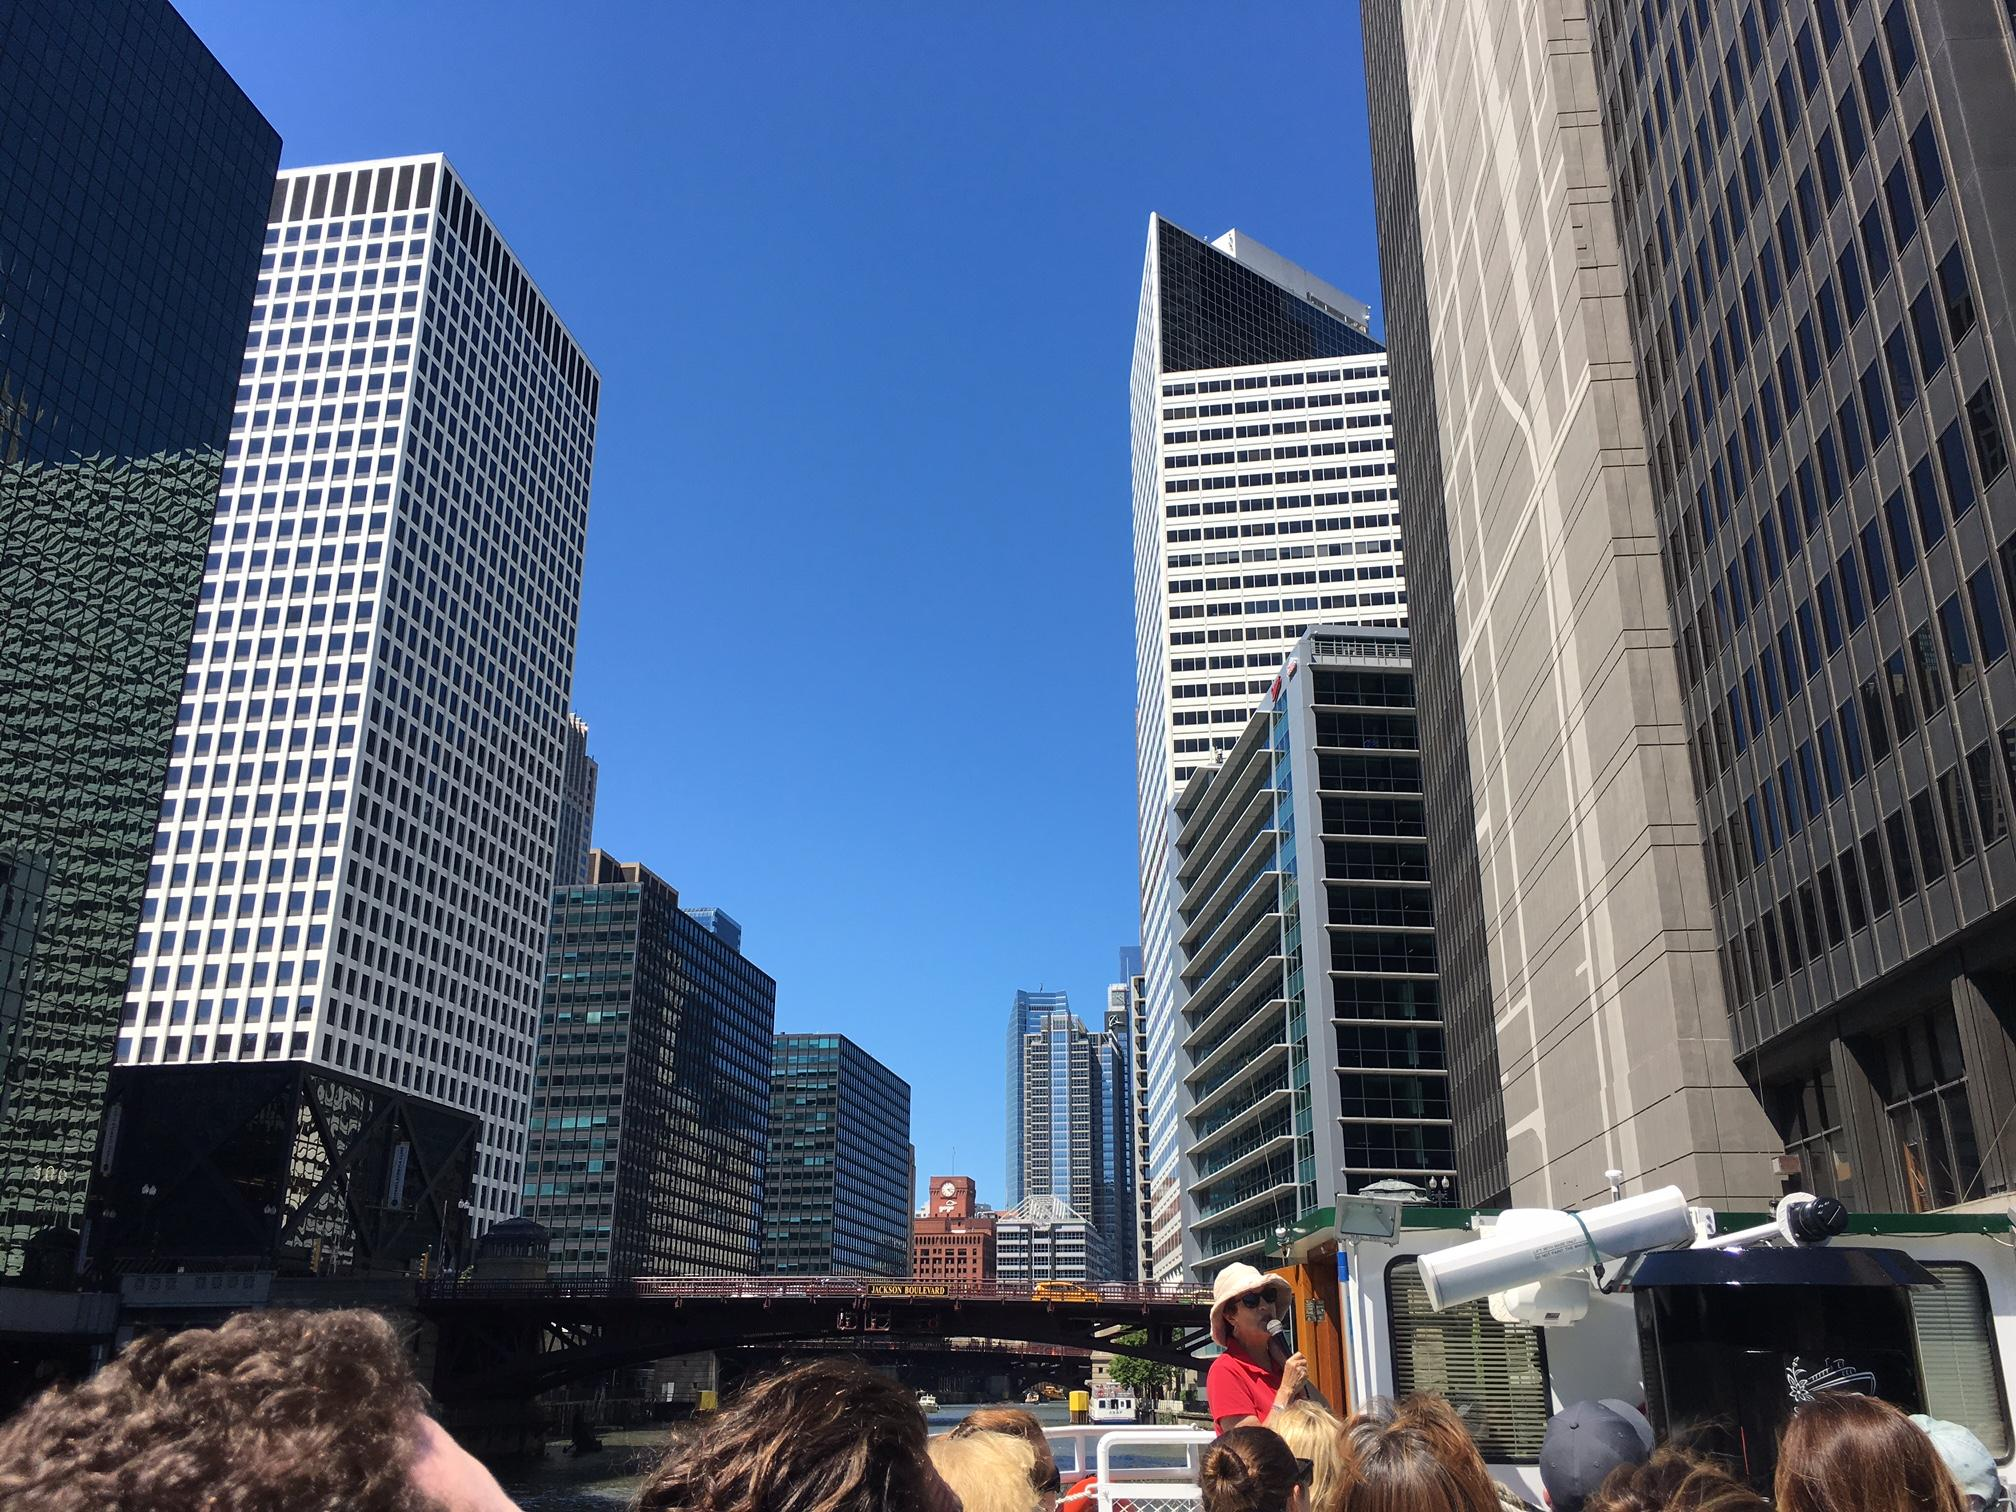 Chicago Architecture going places: looking up at history in chicago | knkx